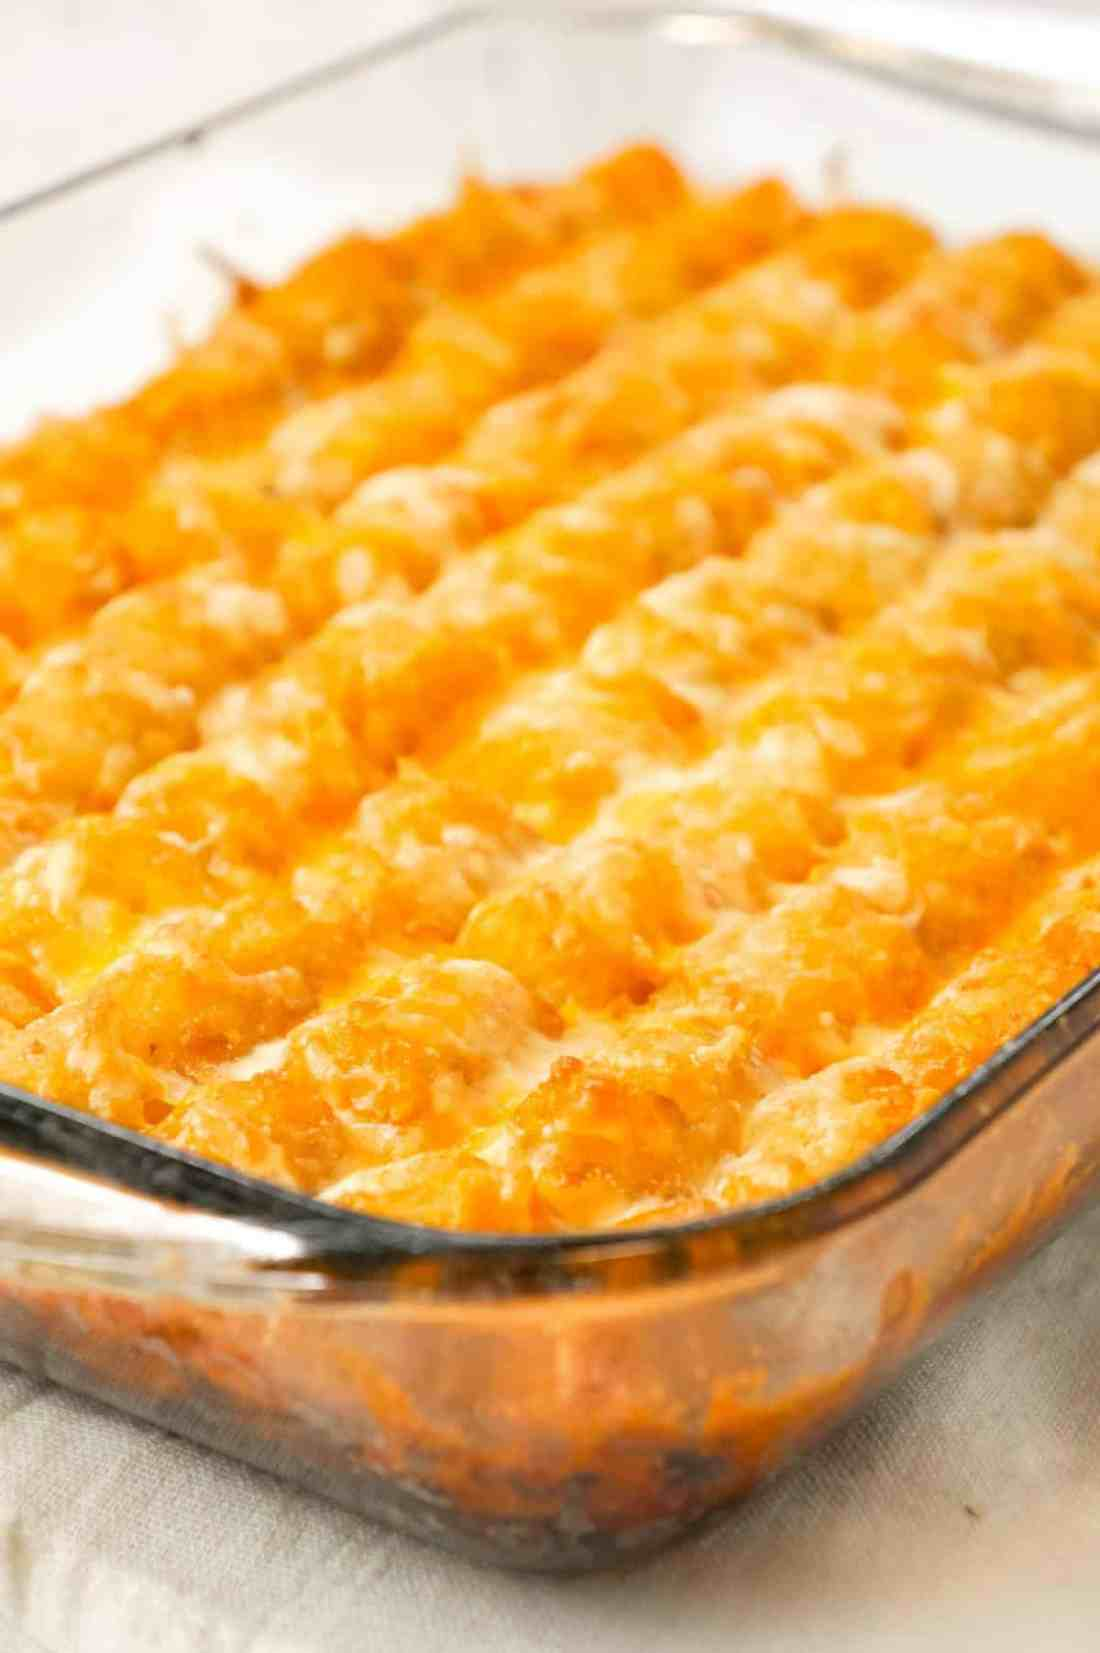 Sloppy Joe Tater Tot Casserole is an easy dinner recipe with a ground beef sloppy joe base, topped with cheese and tater tots.